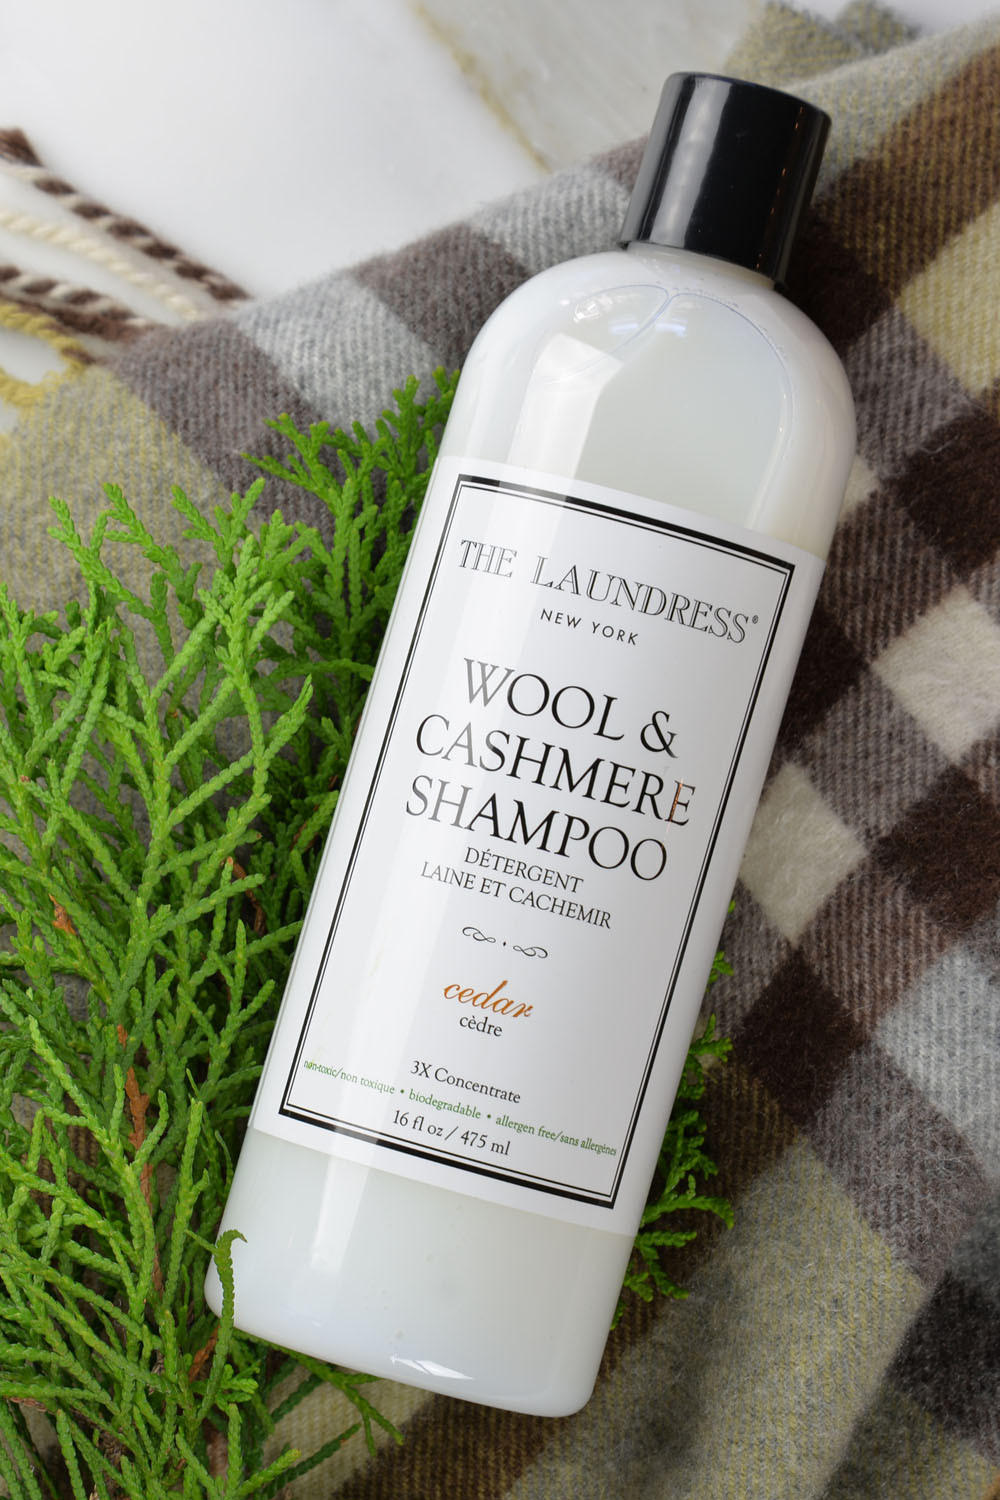 $11.45 The Laundress Wool & Cashmere Shampoo, Cedar, 16 fl. oz. - 32 loads